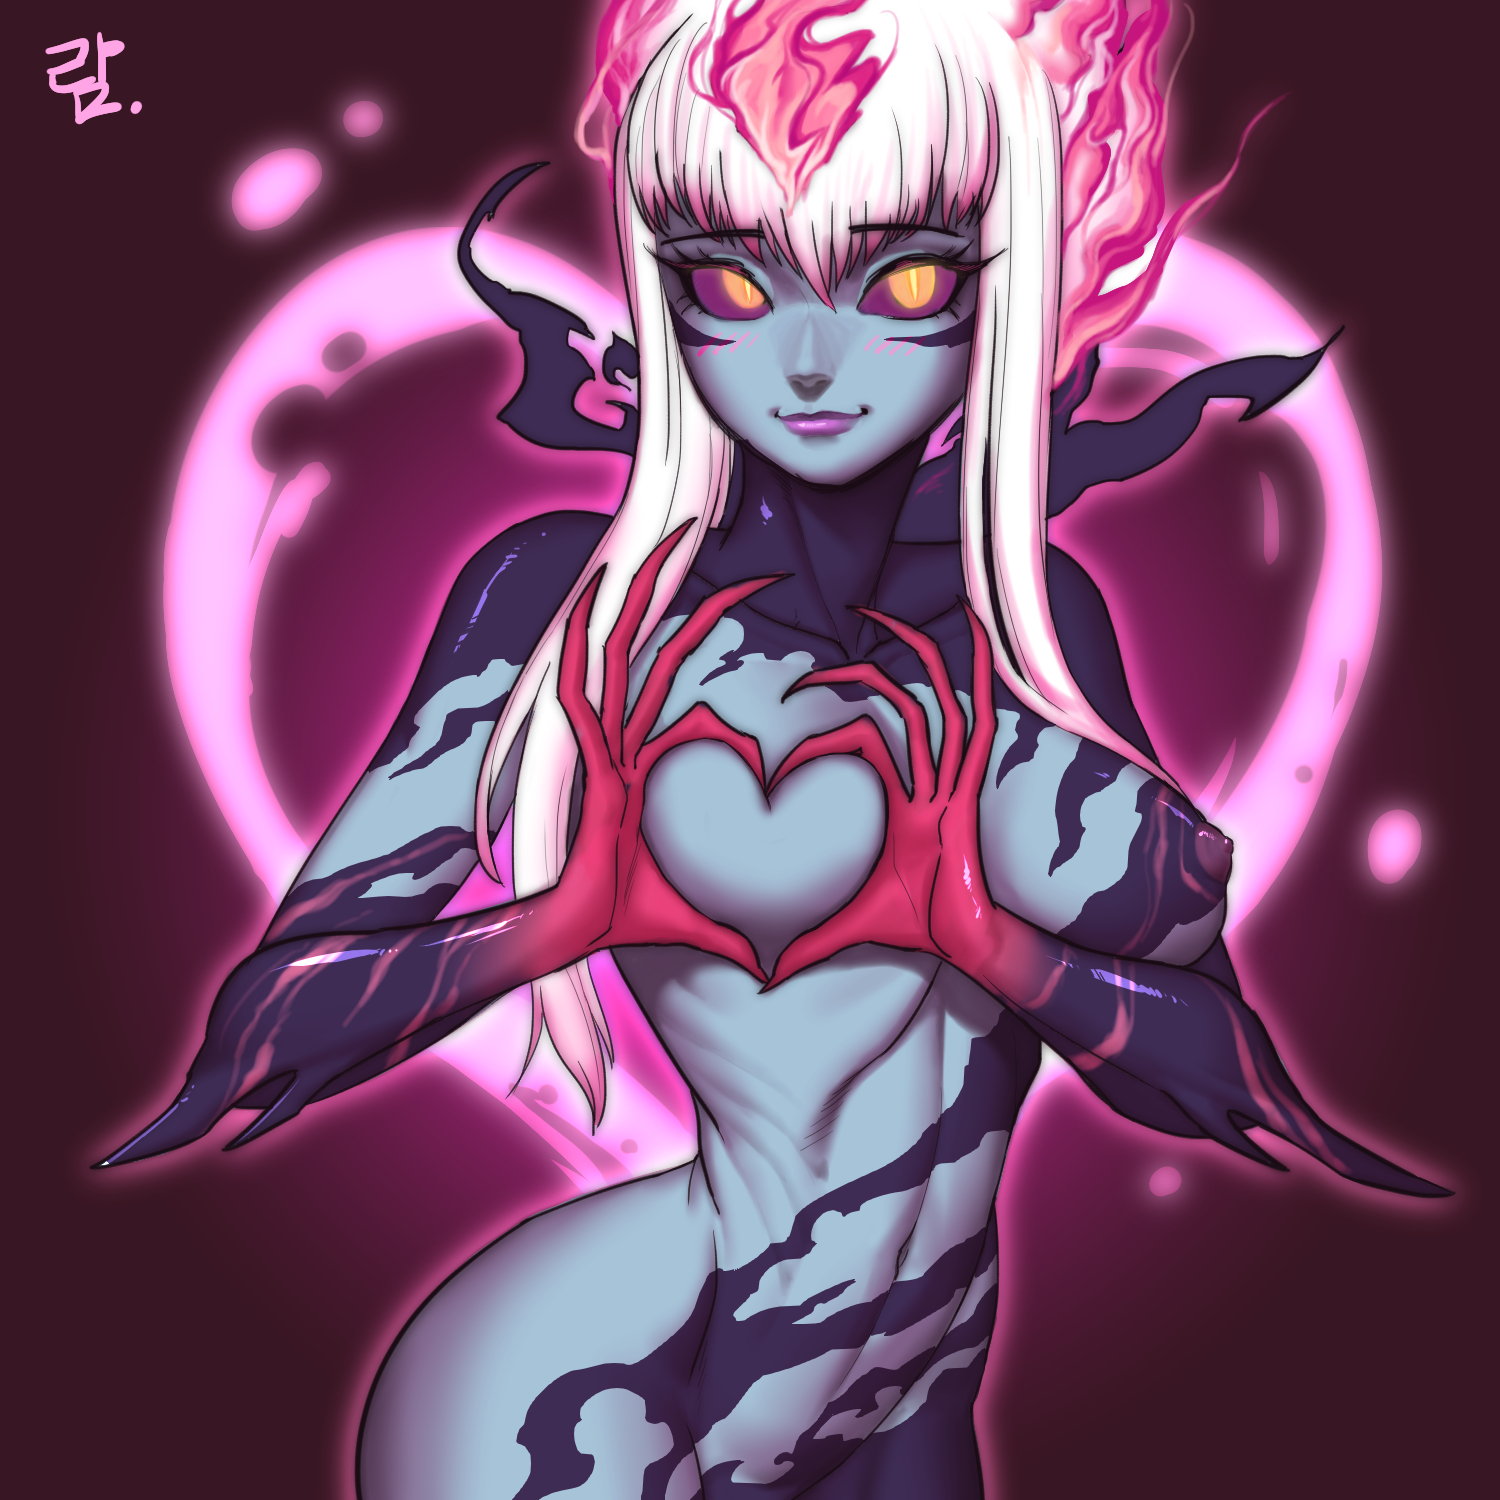 2354687 - Evelynn League_of_Legends Ranger_Squirrel